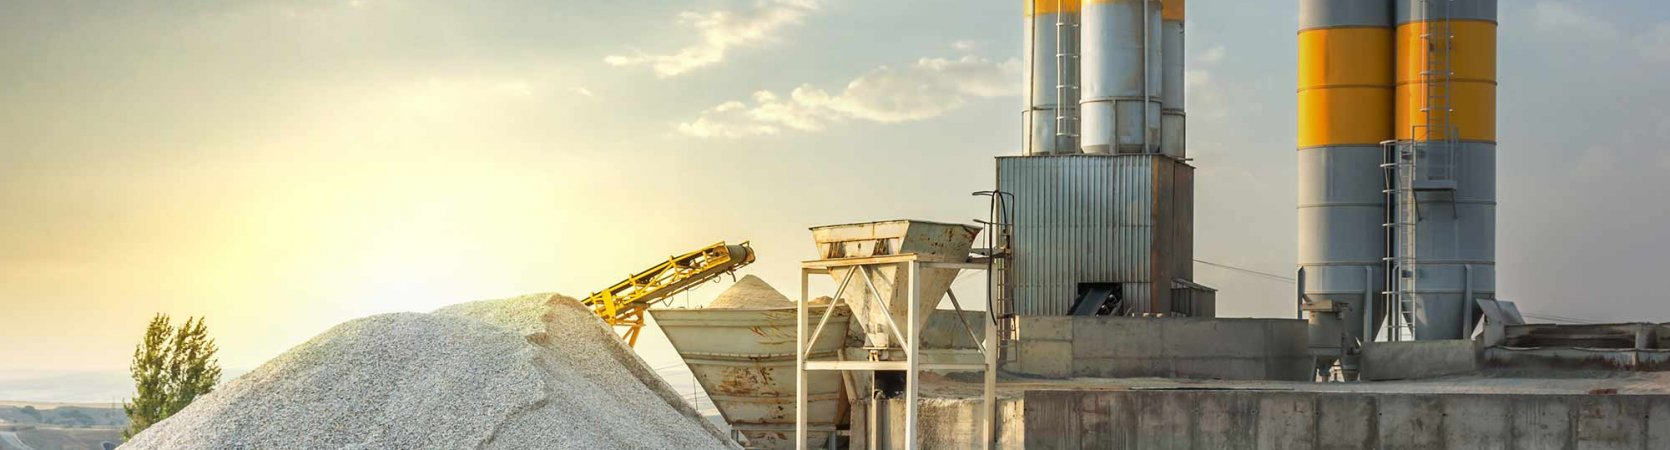 Mining and Extraction Control System Modernization